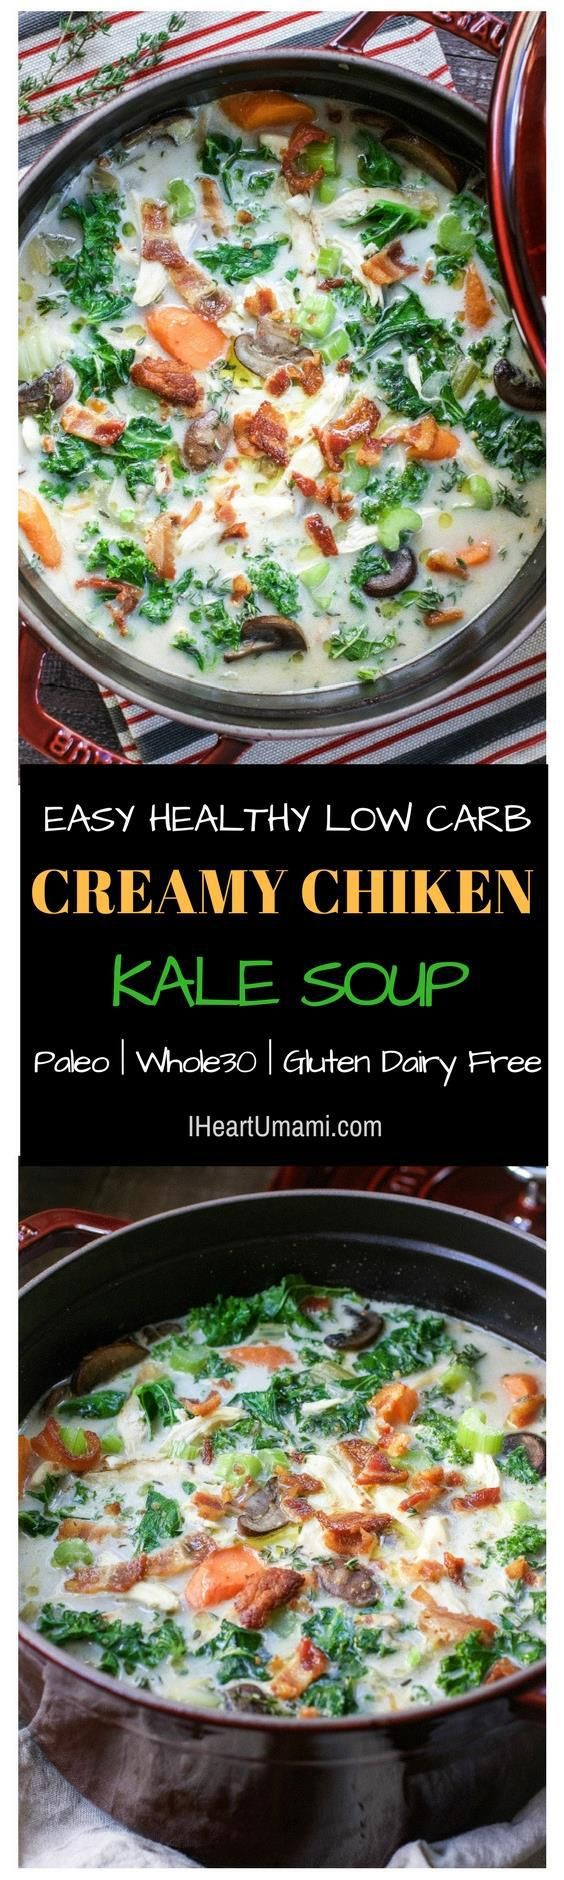 Easy and super delicious CREAMY CHICKEN KALE SOUP. It's hearty, healthy, and gluten dairy free. Follow the instructions to find out how to use leftover shredded chicken (or turkey) to make this hearty delicious soup ! #creamychickensoup #creamy #chickensoup #iheartumami